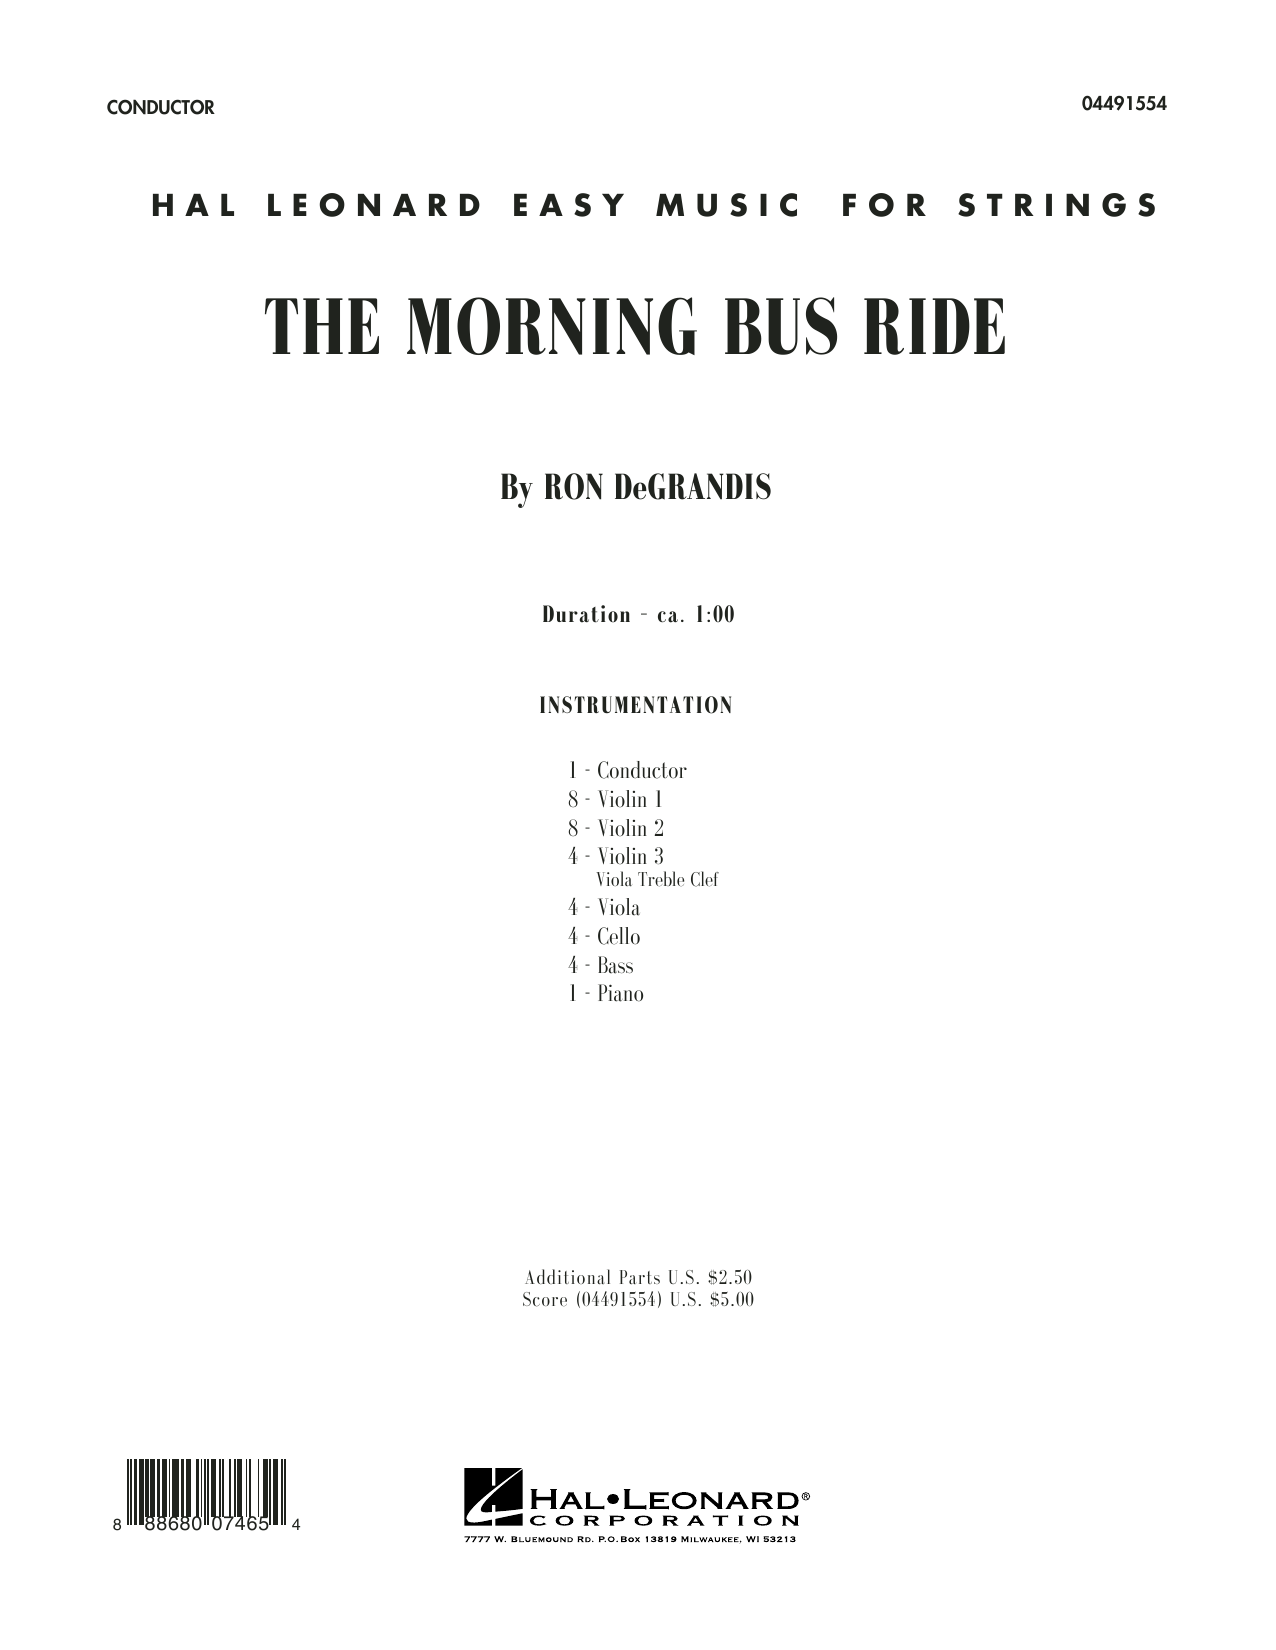 The Morning Bus Ride (COMPLETE) sheet music for orchestra by Ron DeGrandis